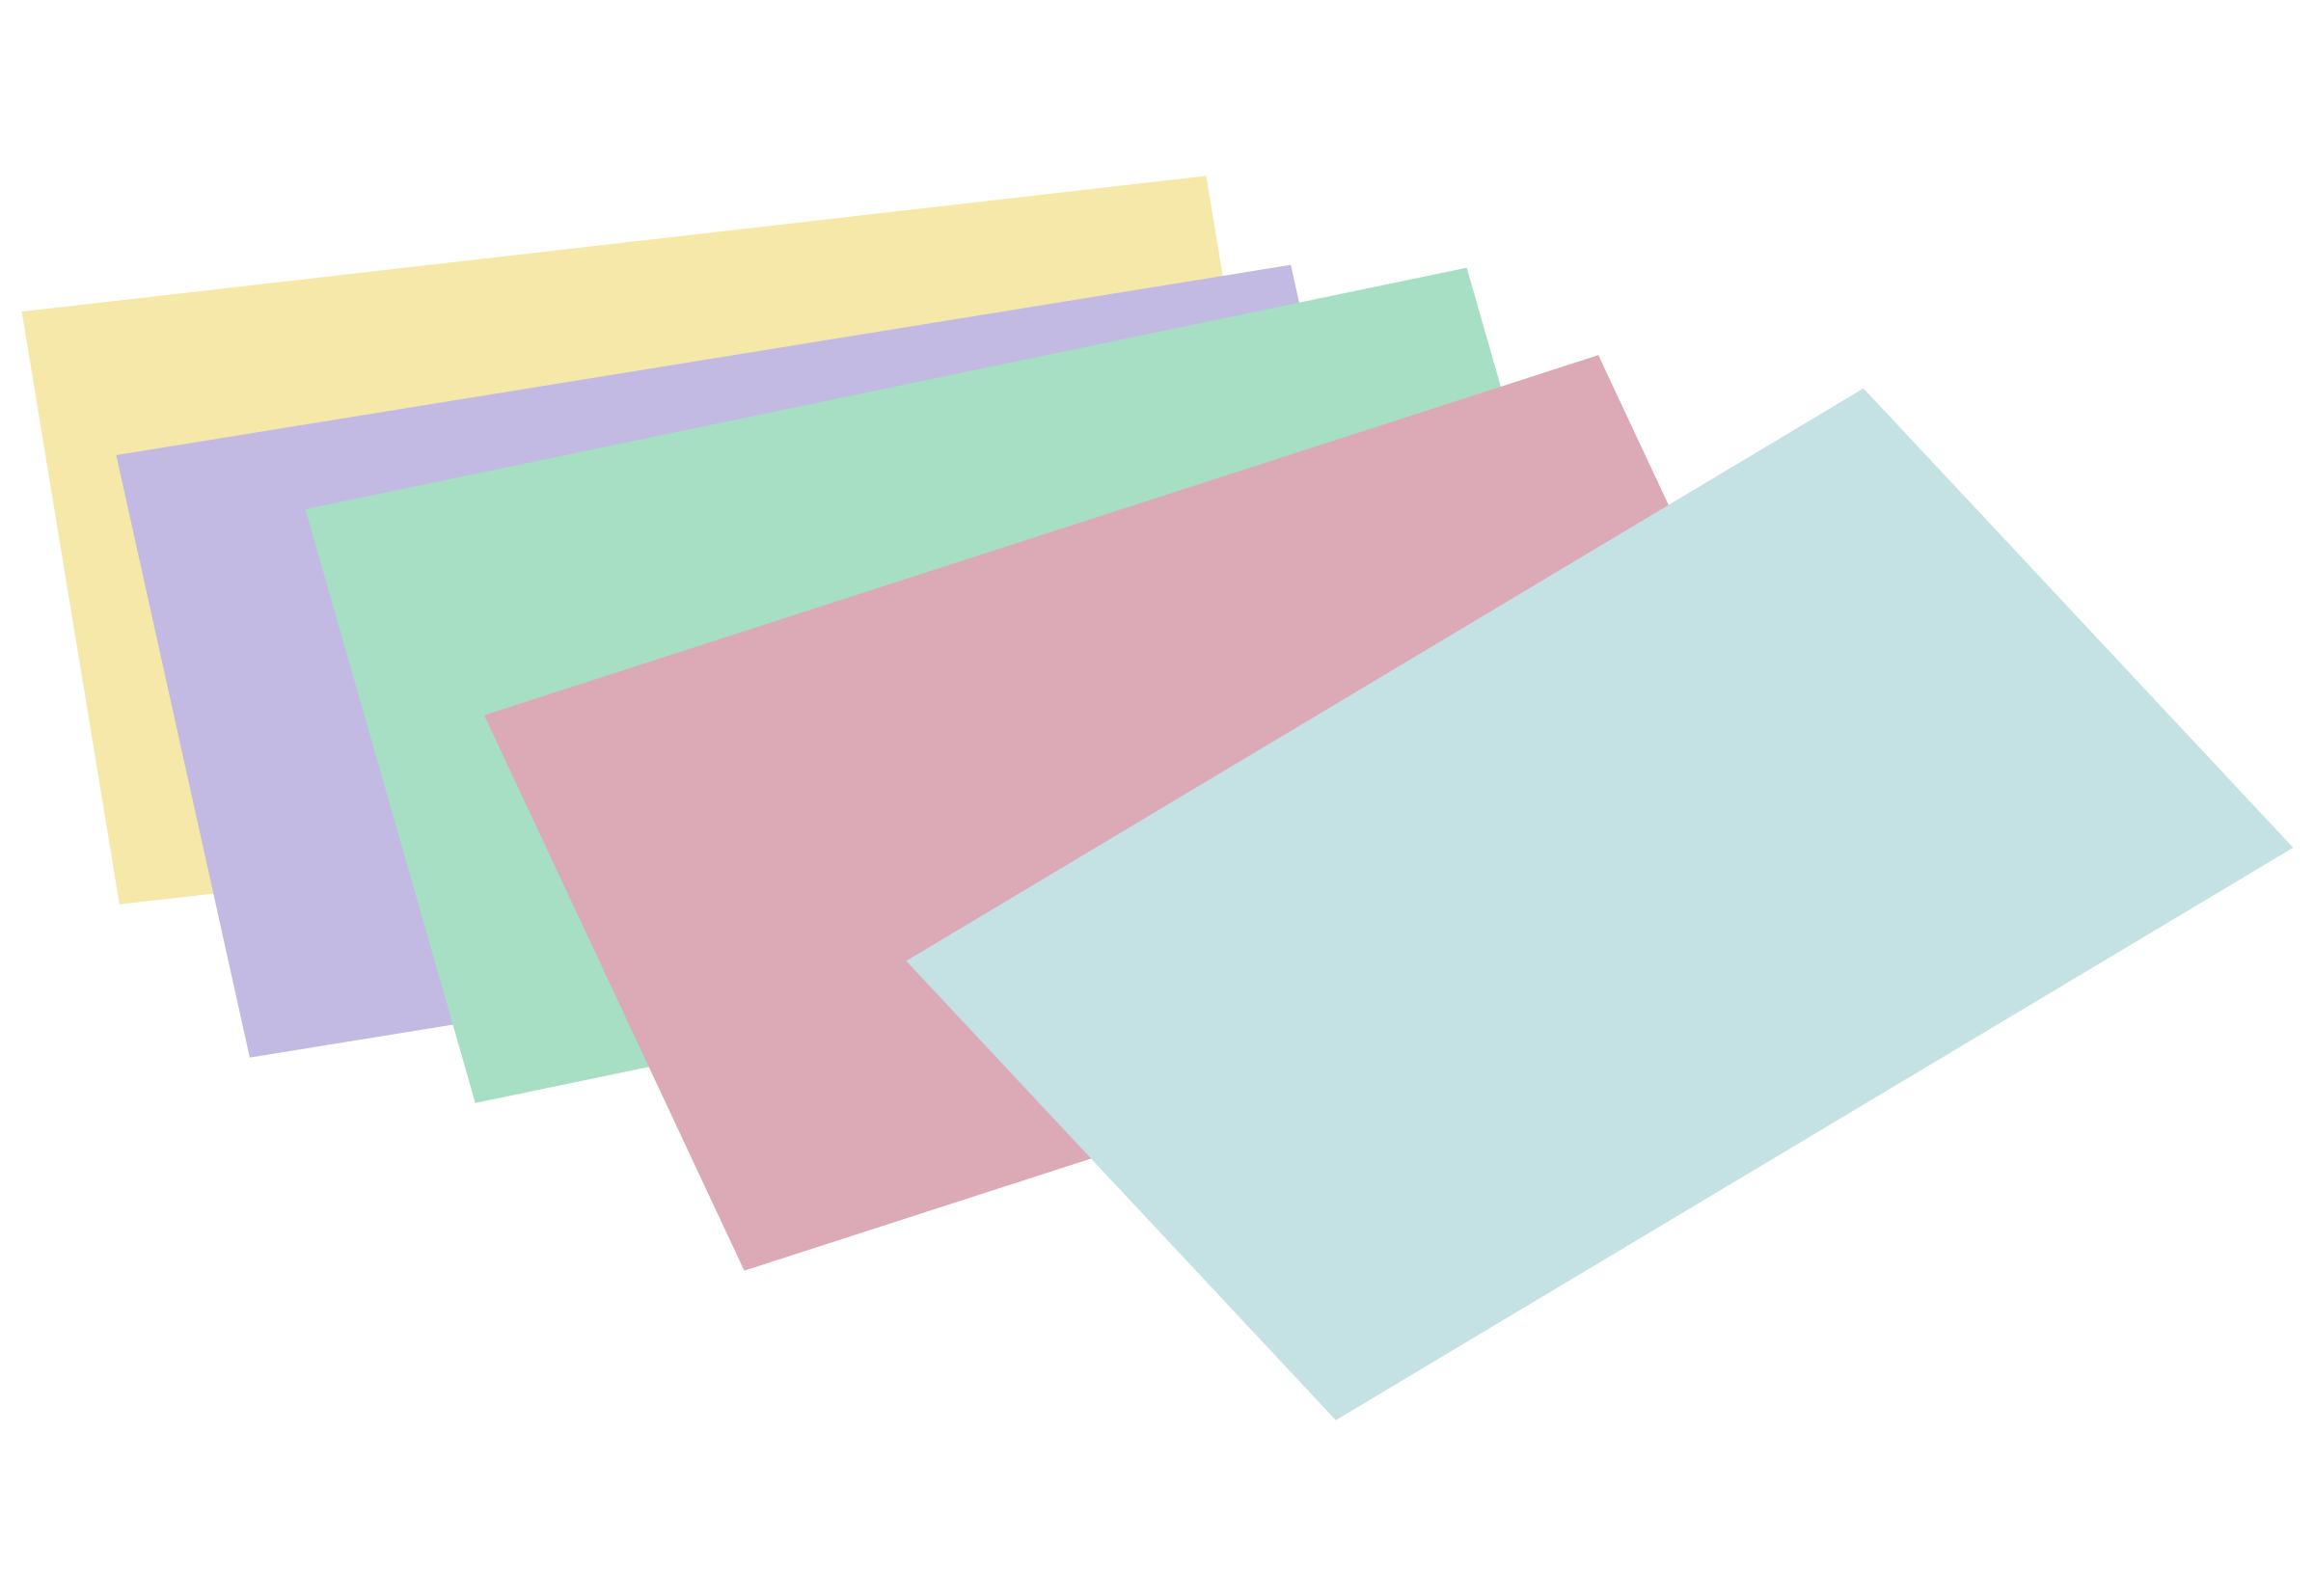 Stack of unlined colored index cards by snifty